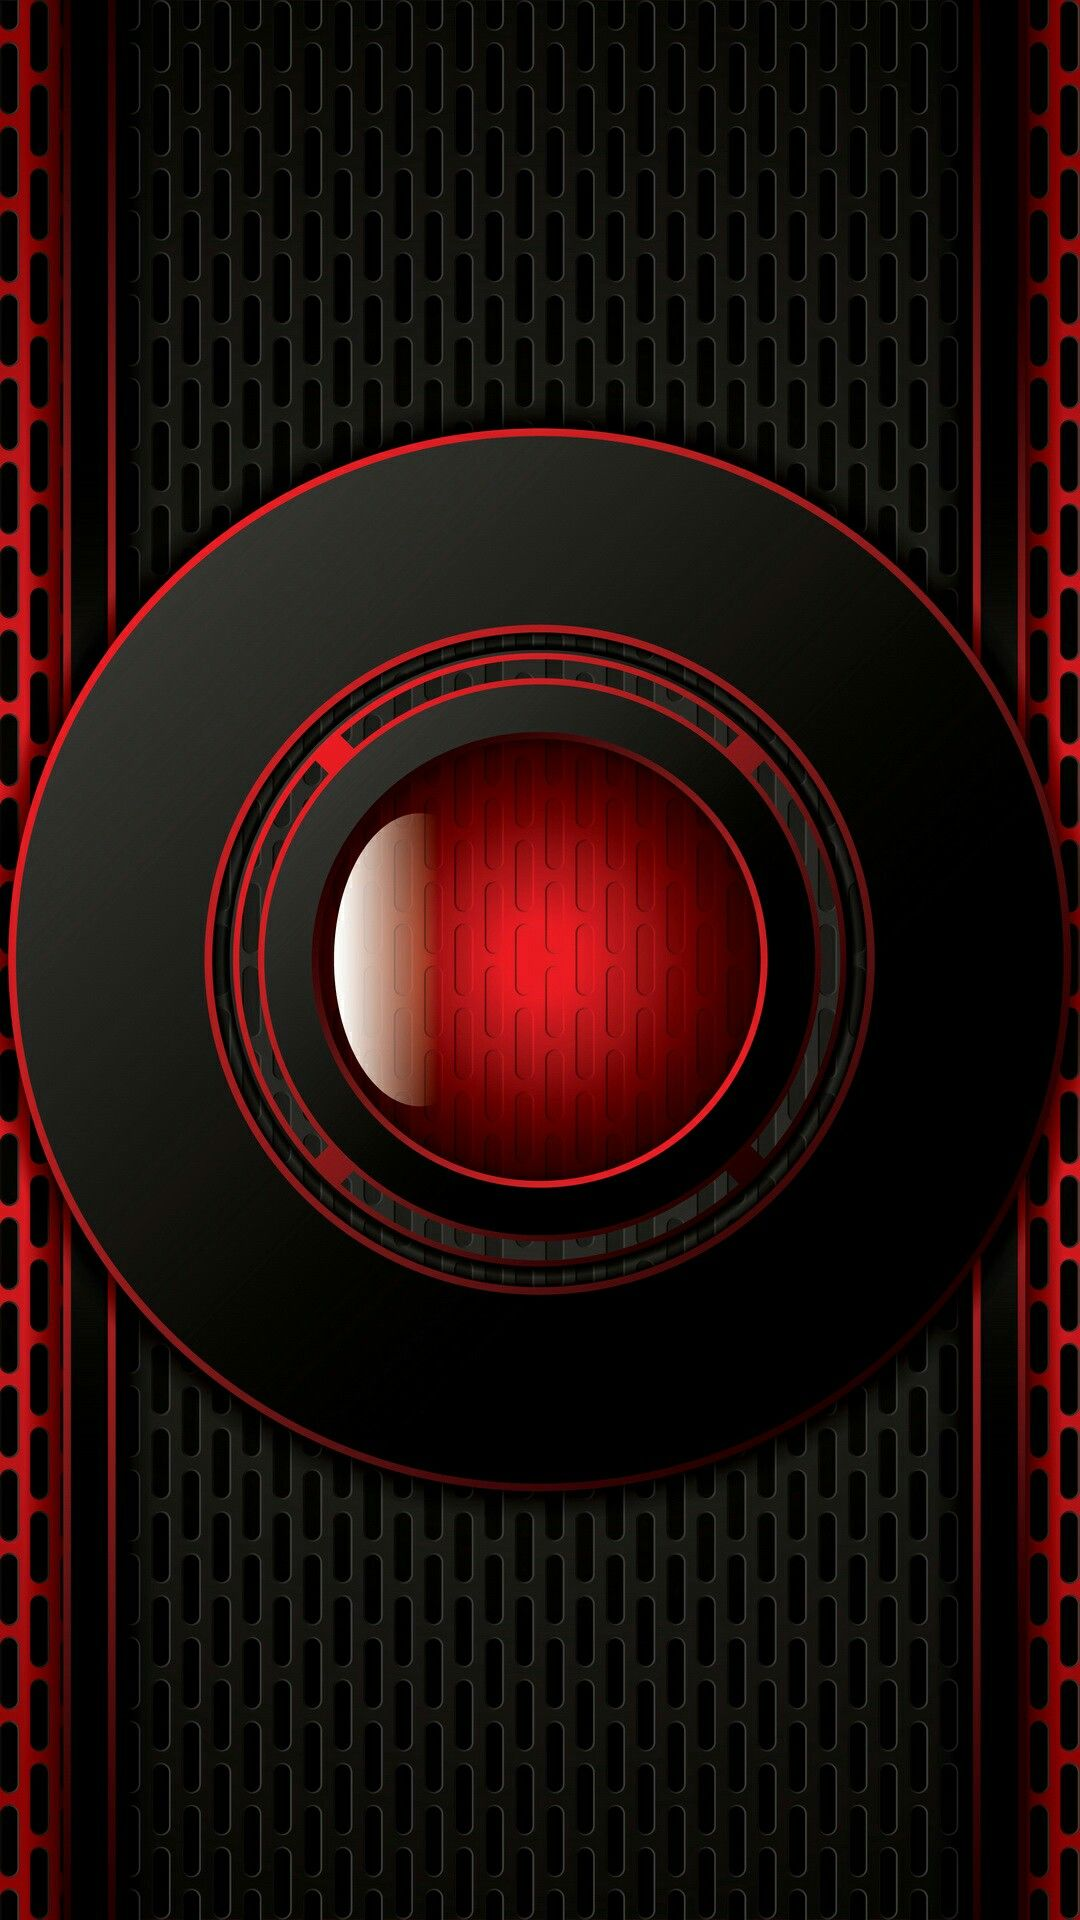 Black and Red Wallpaper Red wallpaper, Android wallpaper